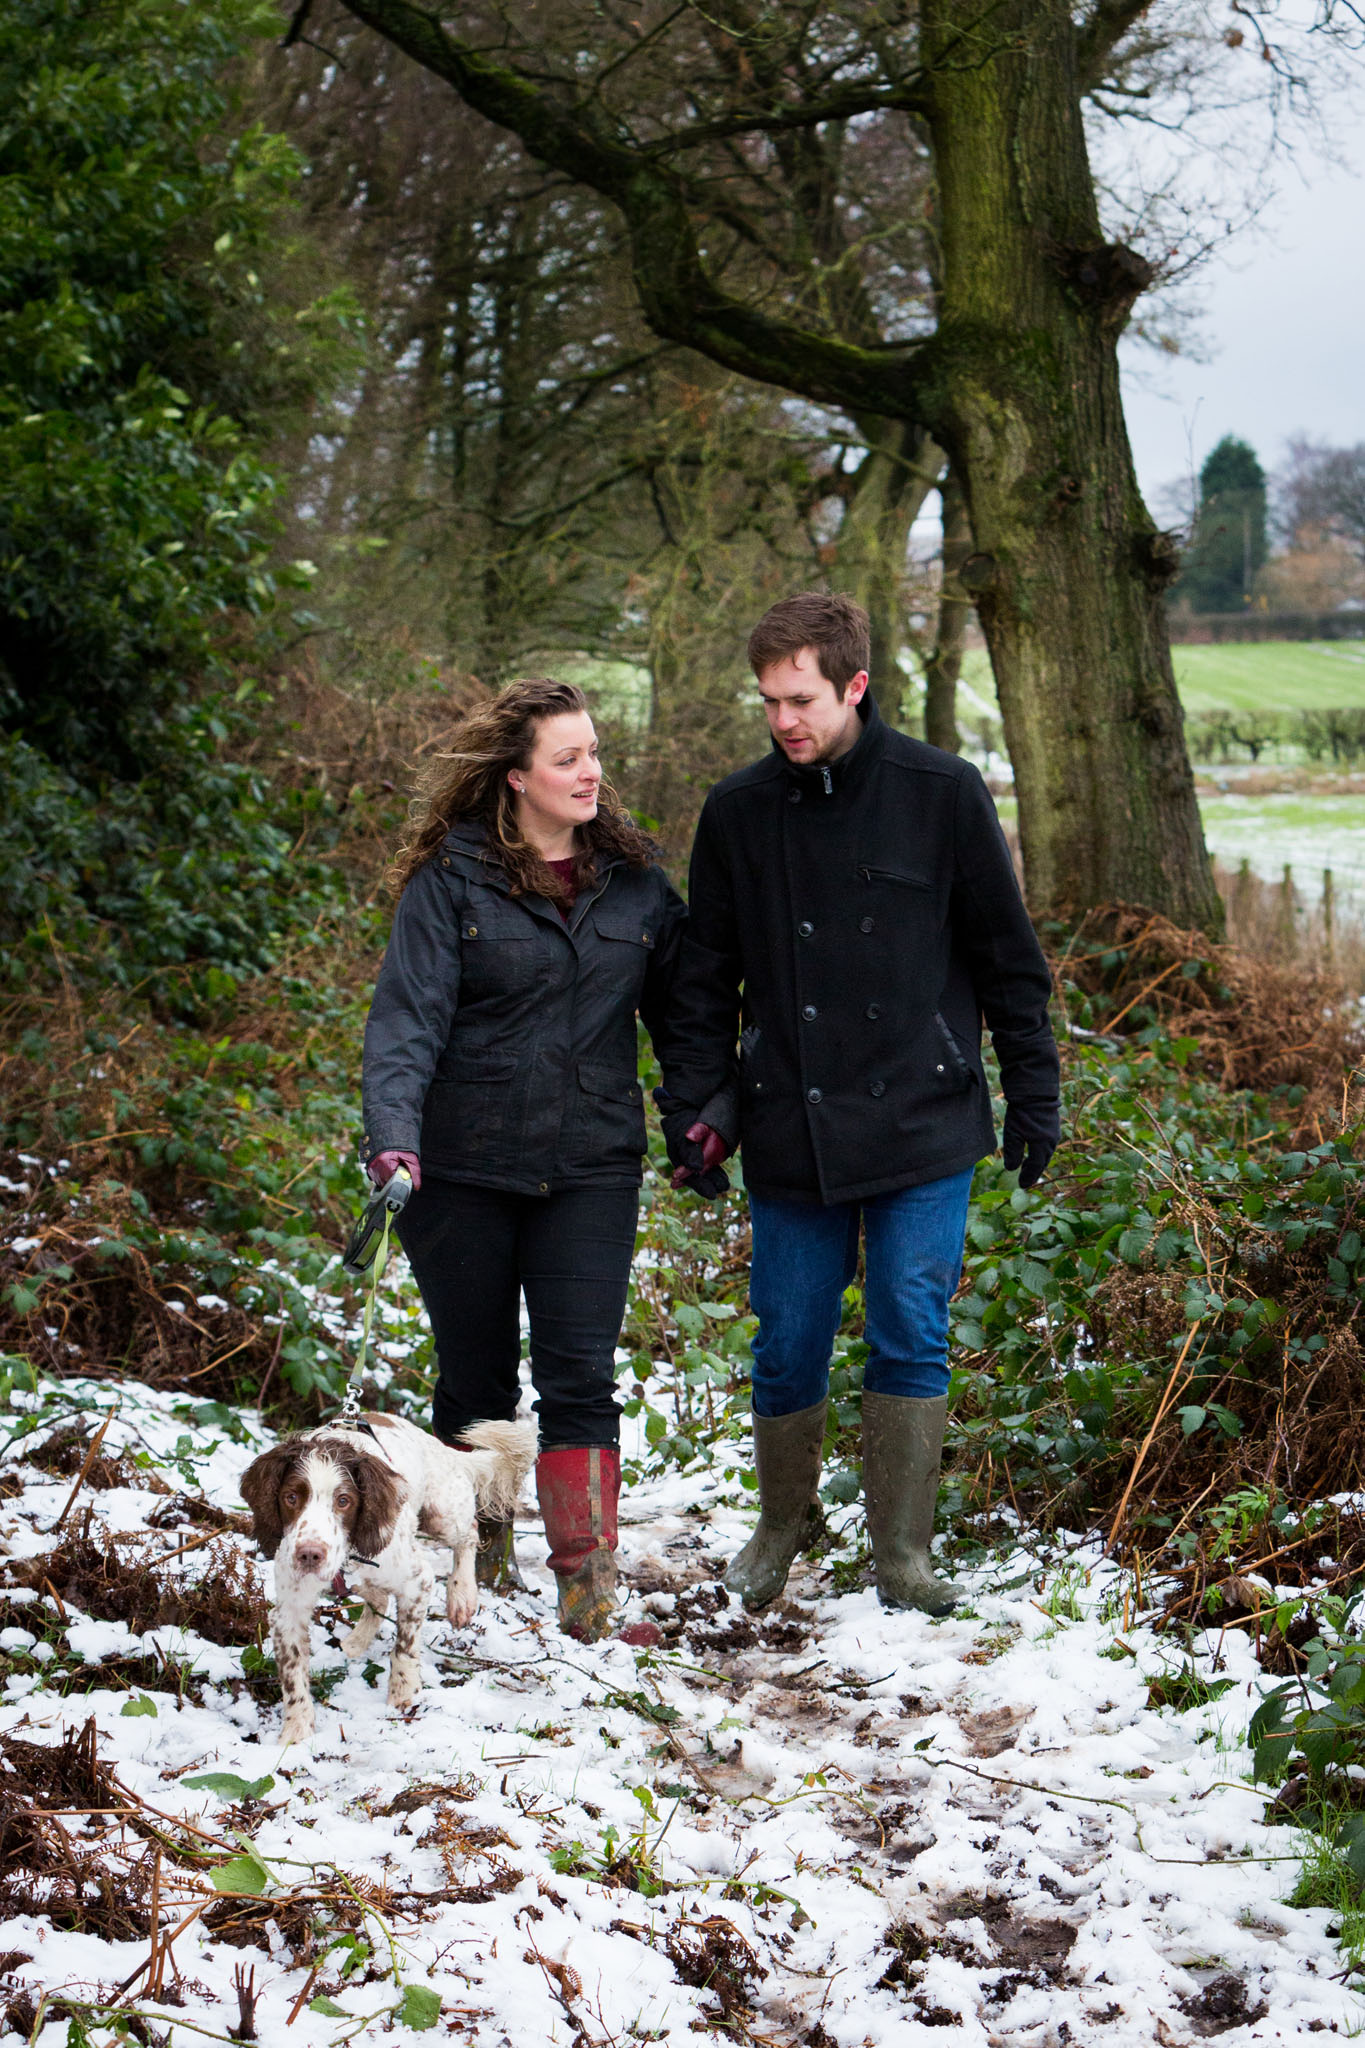 A Portrait of a young couple walking their dog in the snow near Lymm, Cheshire by Cheshire lifestyle photographer Andrew Collier Photography